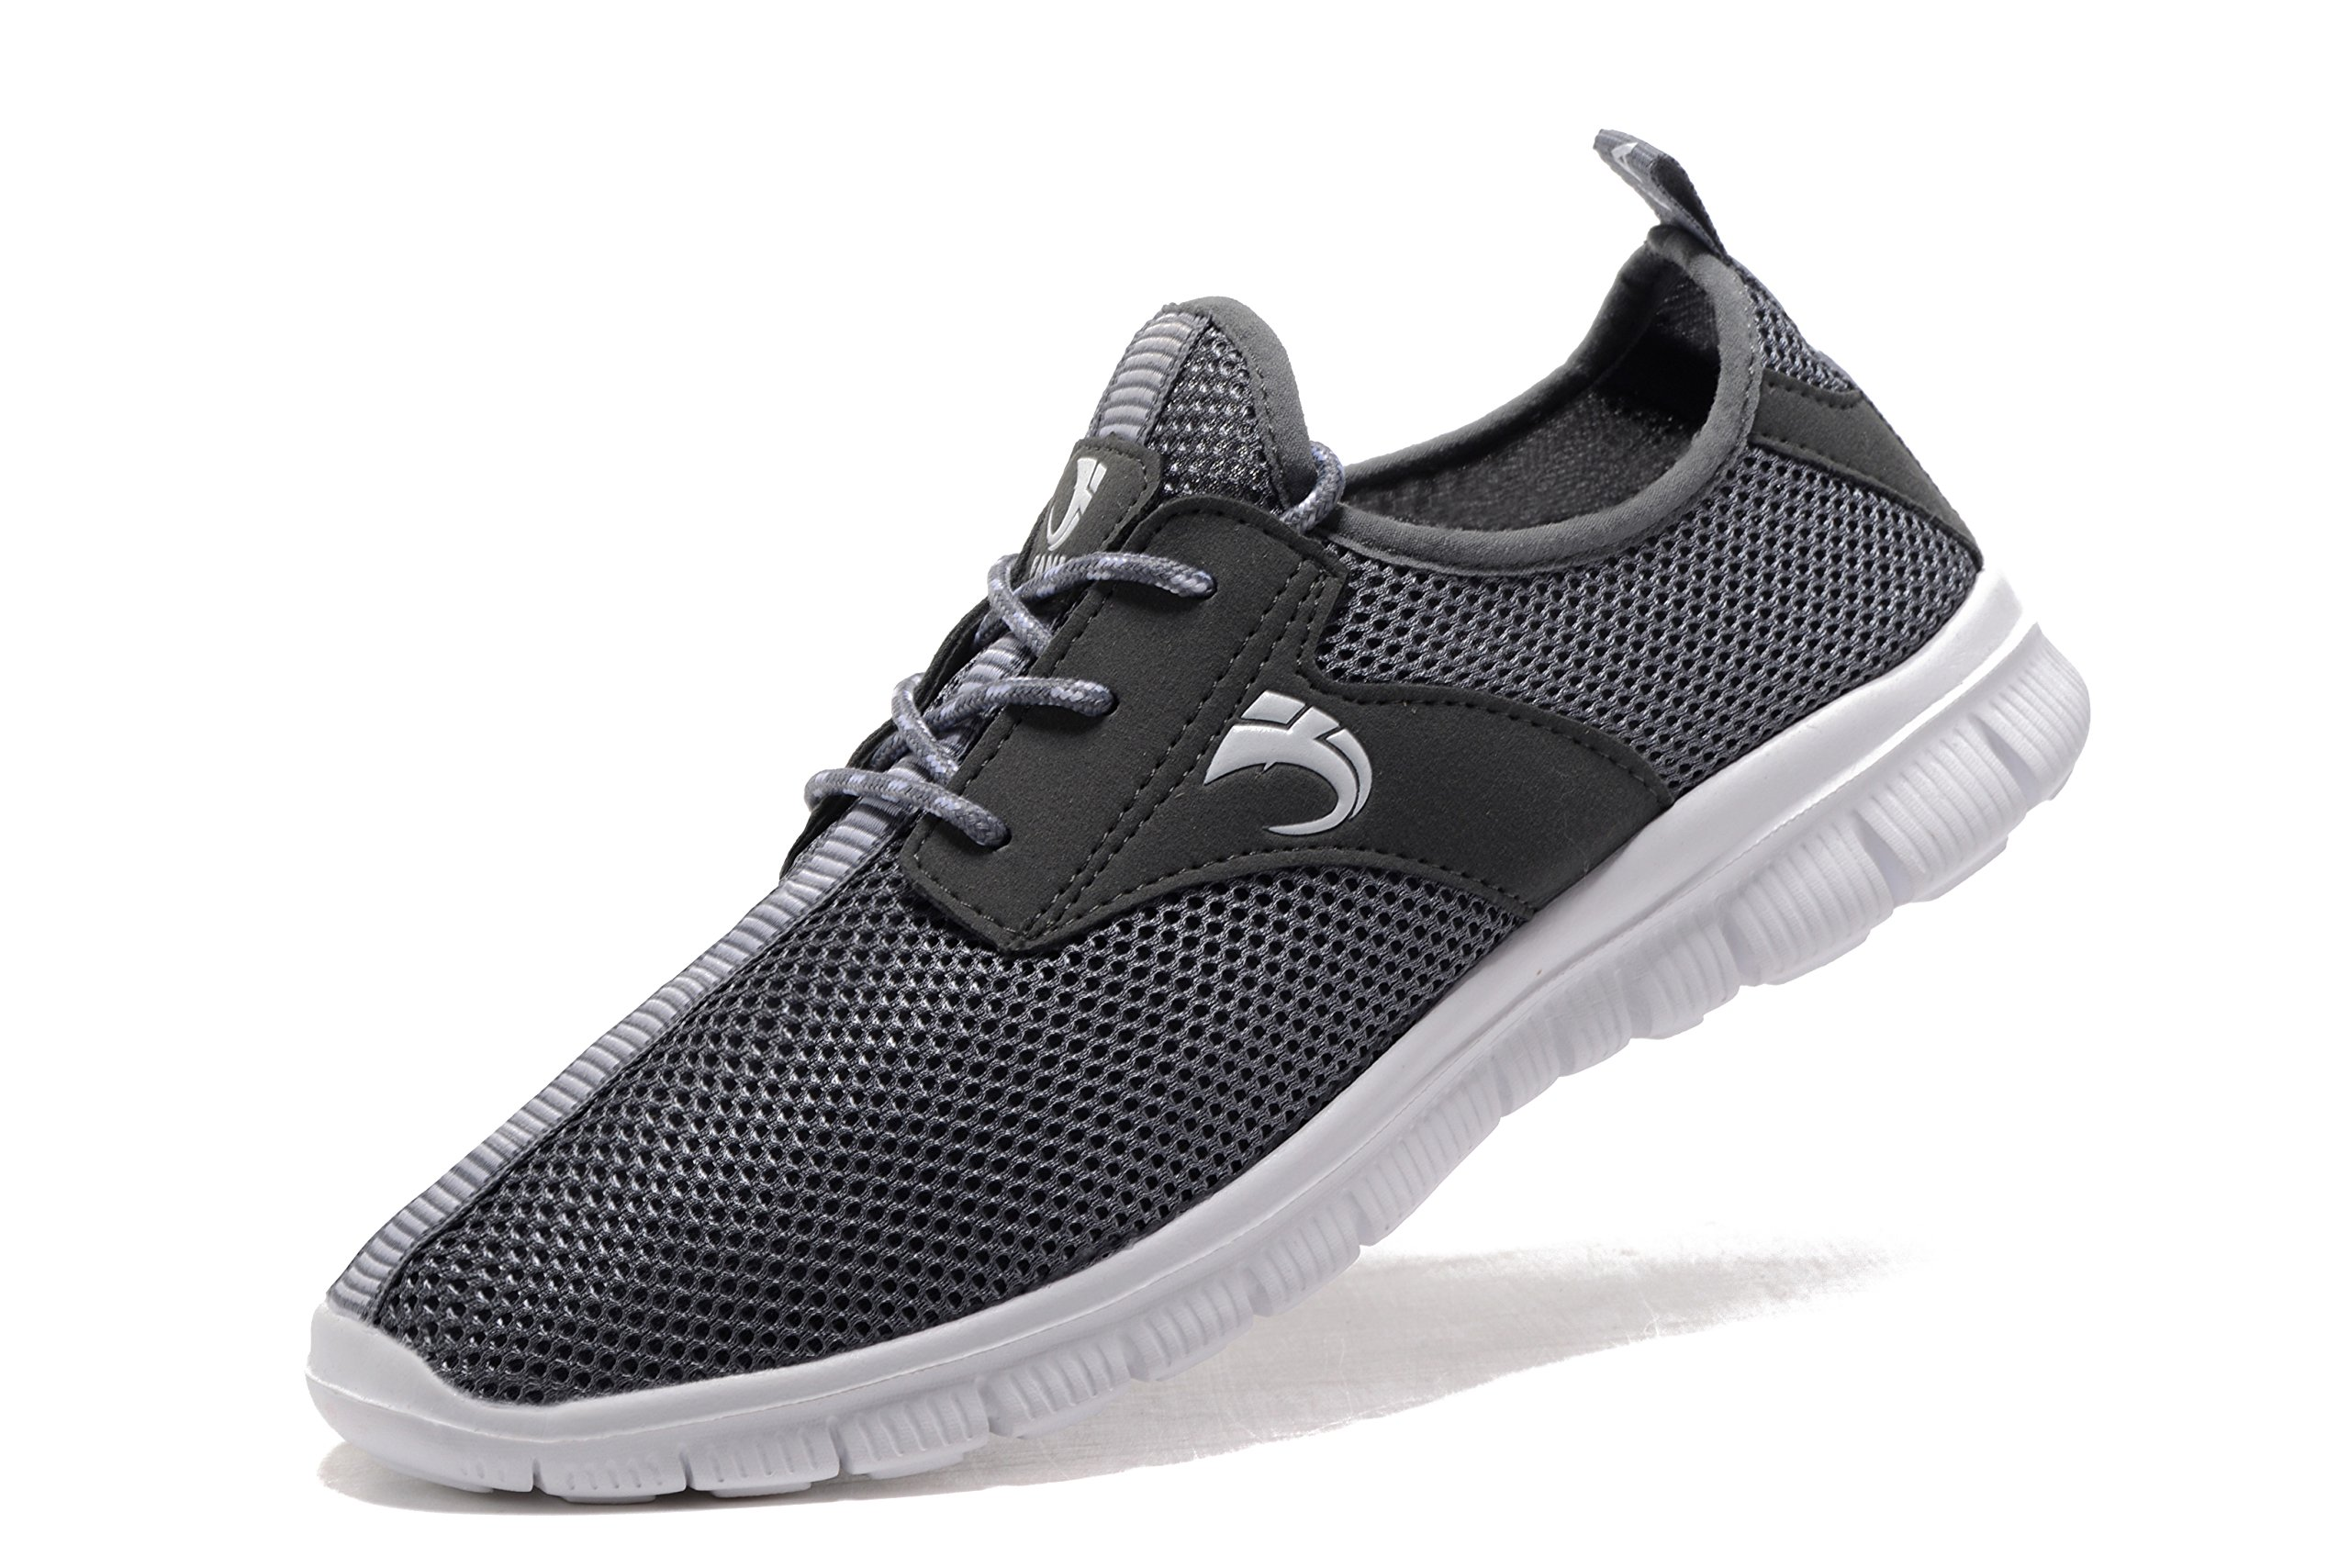 FANIC Men's Walking Shoes Workout Shoes Full Mesh Running Shoes Lightweight Comfortable Fitness Breathable Casual Sneaker (47 M EU / 12.5 D(M) US, Grey) by FANIC (Image #1)